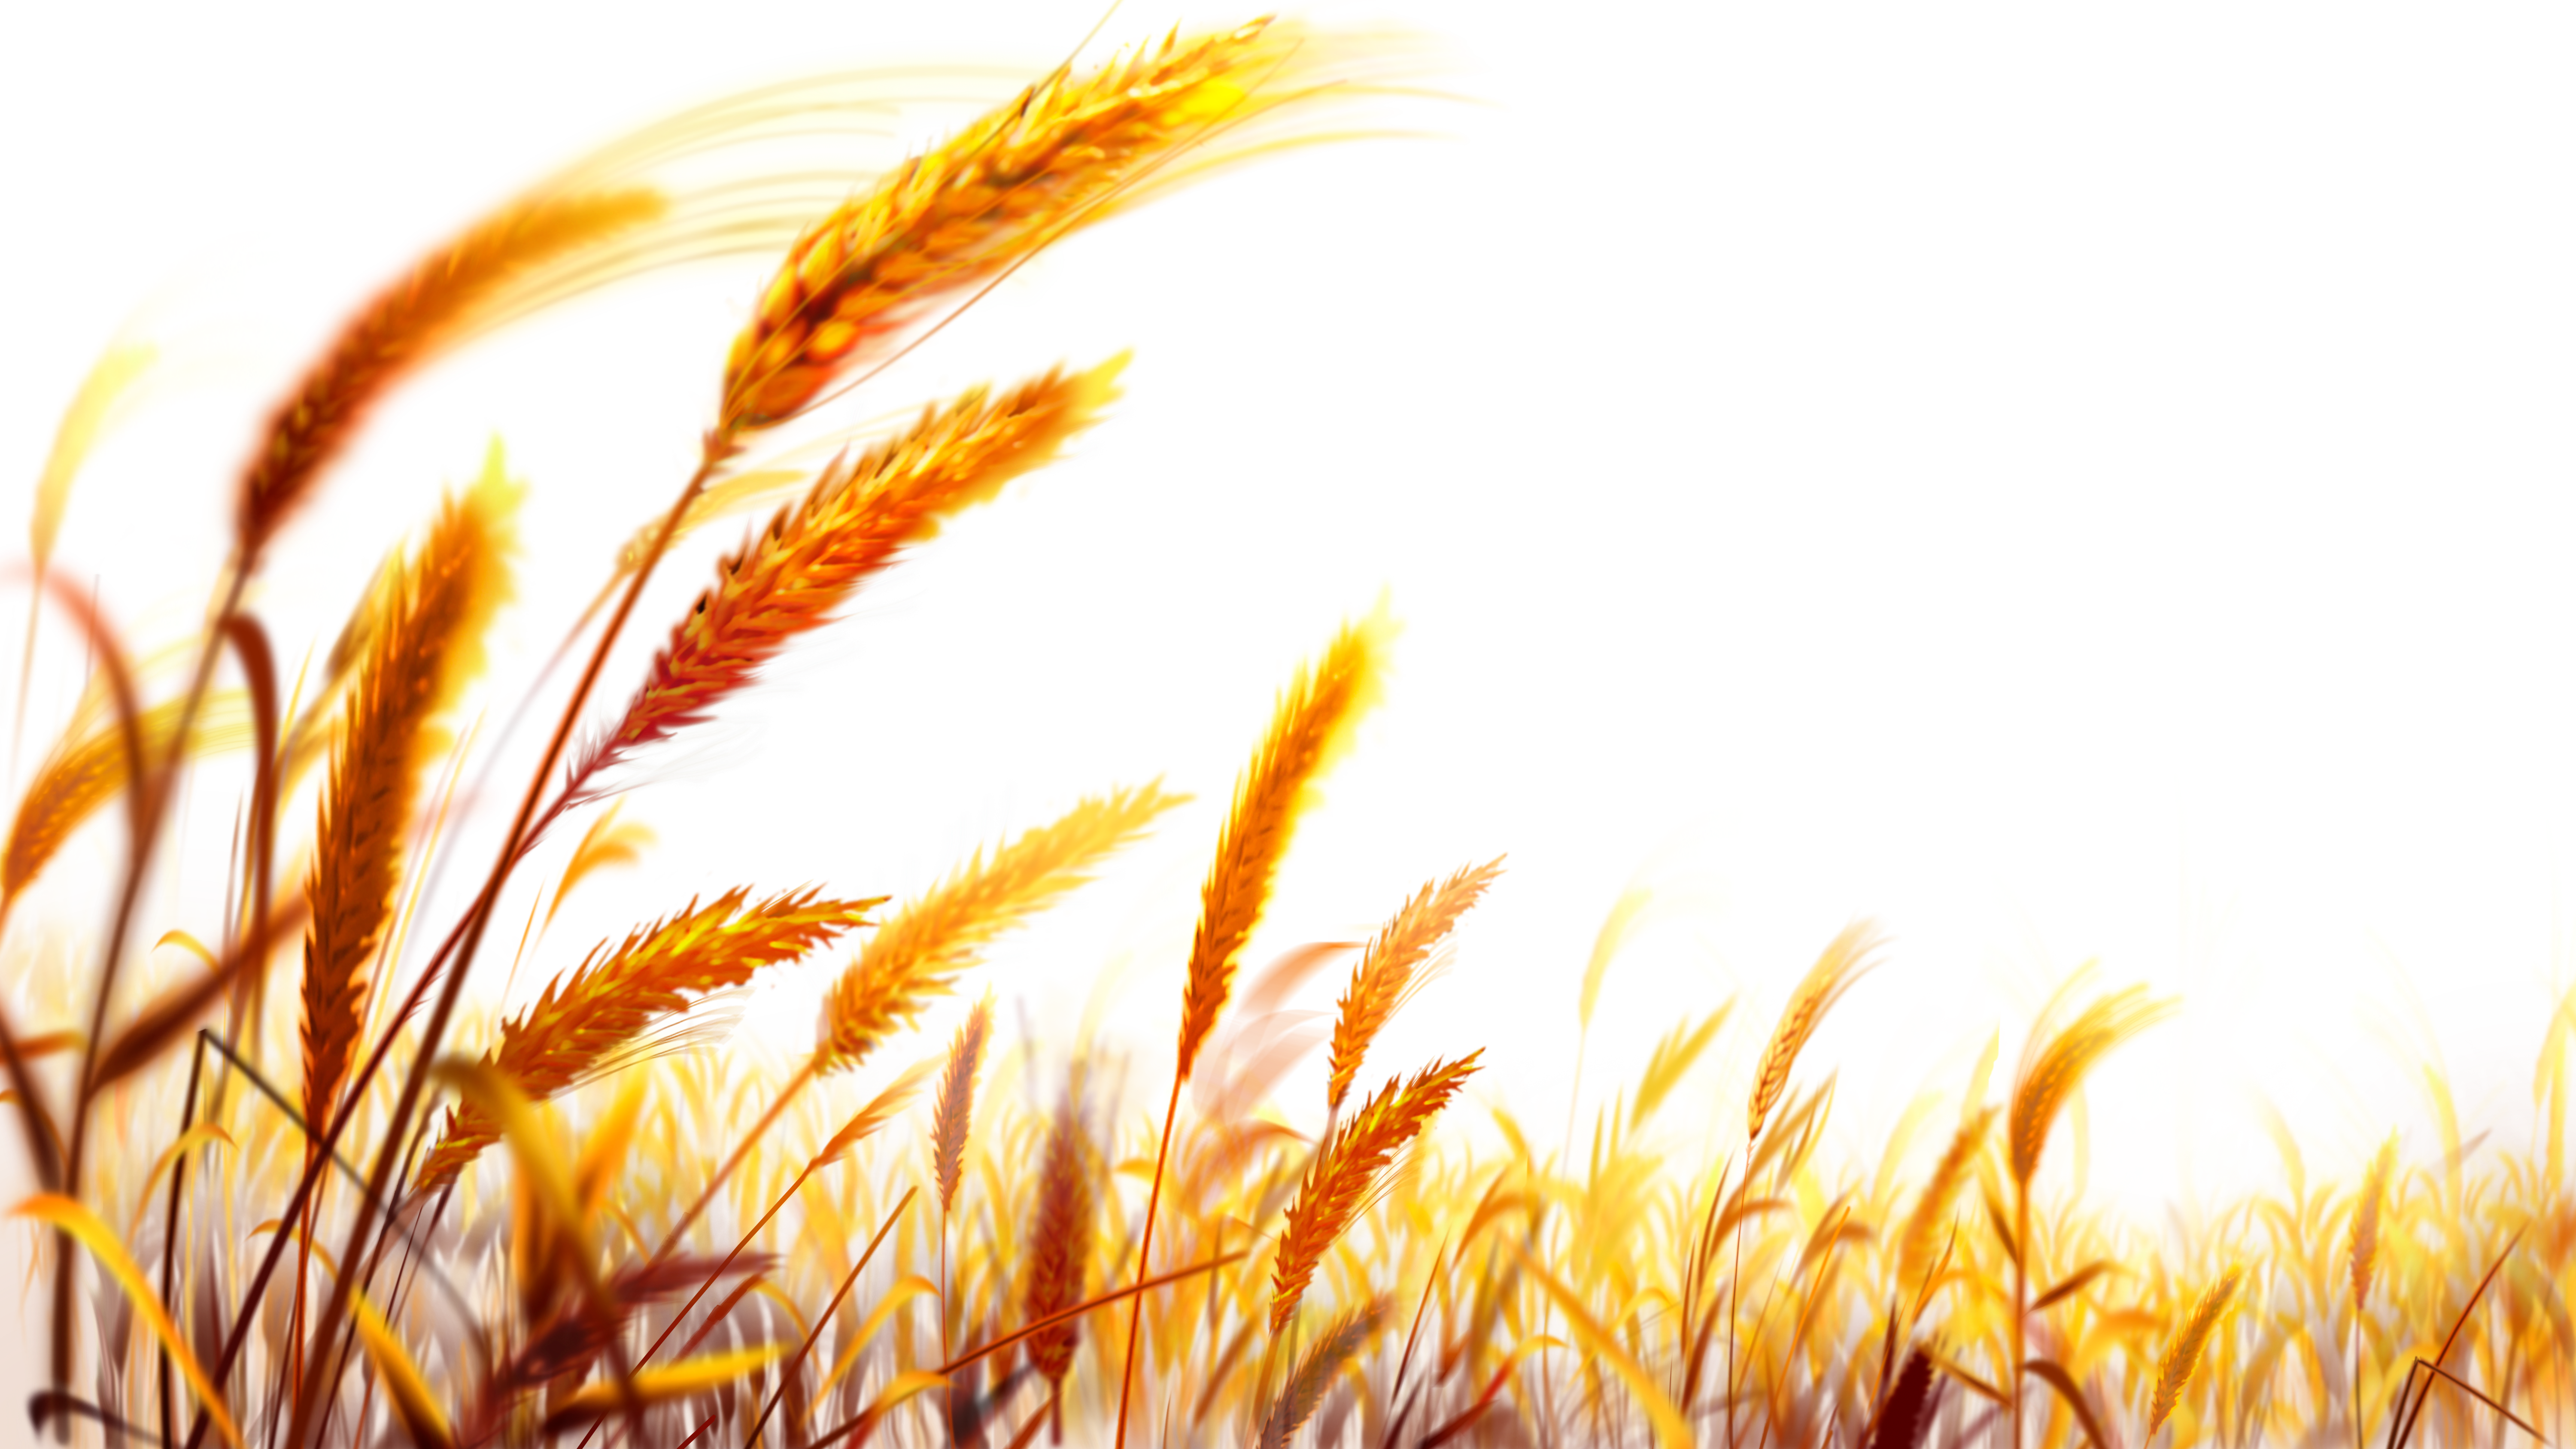 Pin by charudeal on. Grain clipart harvest field